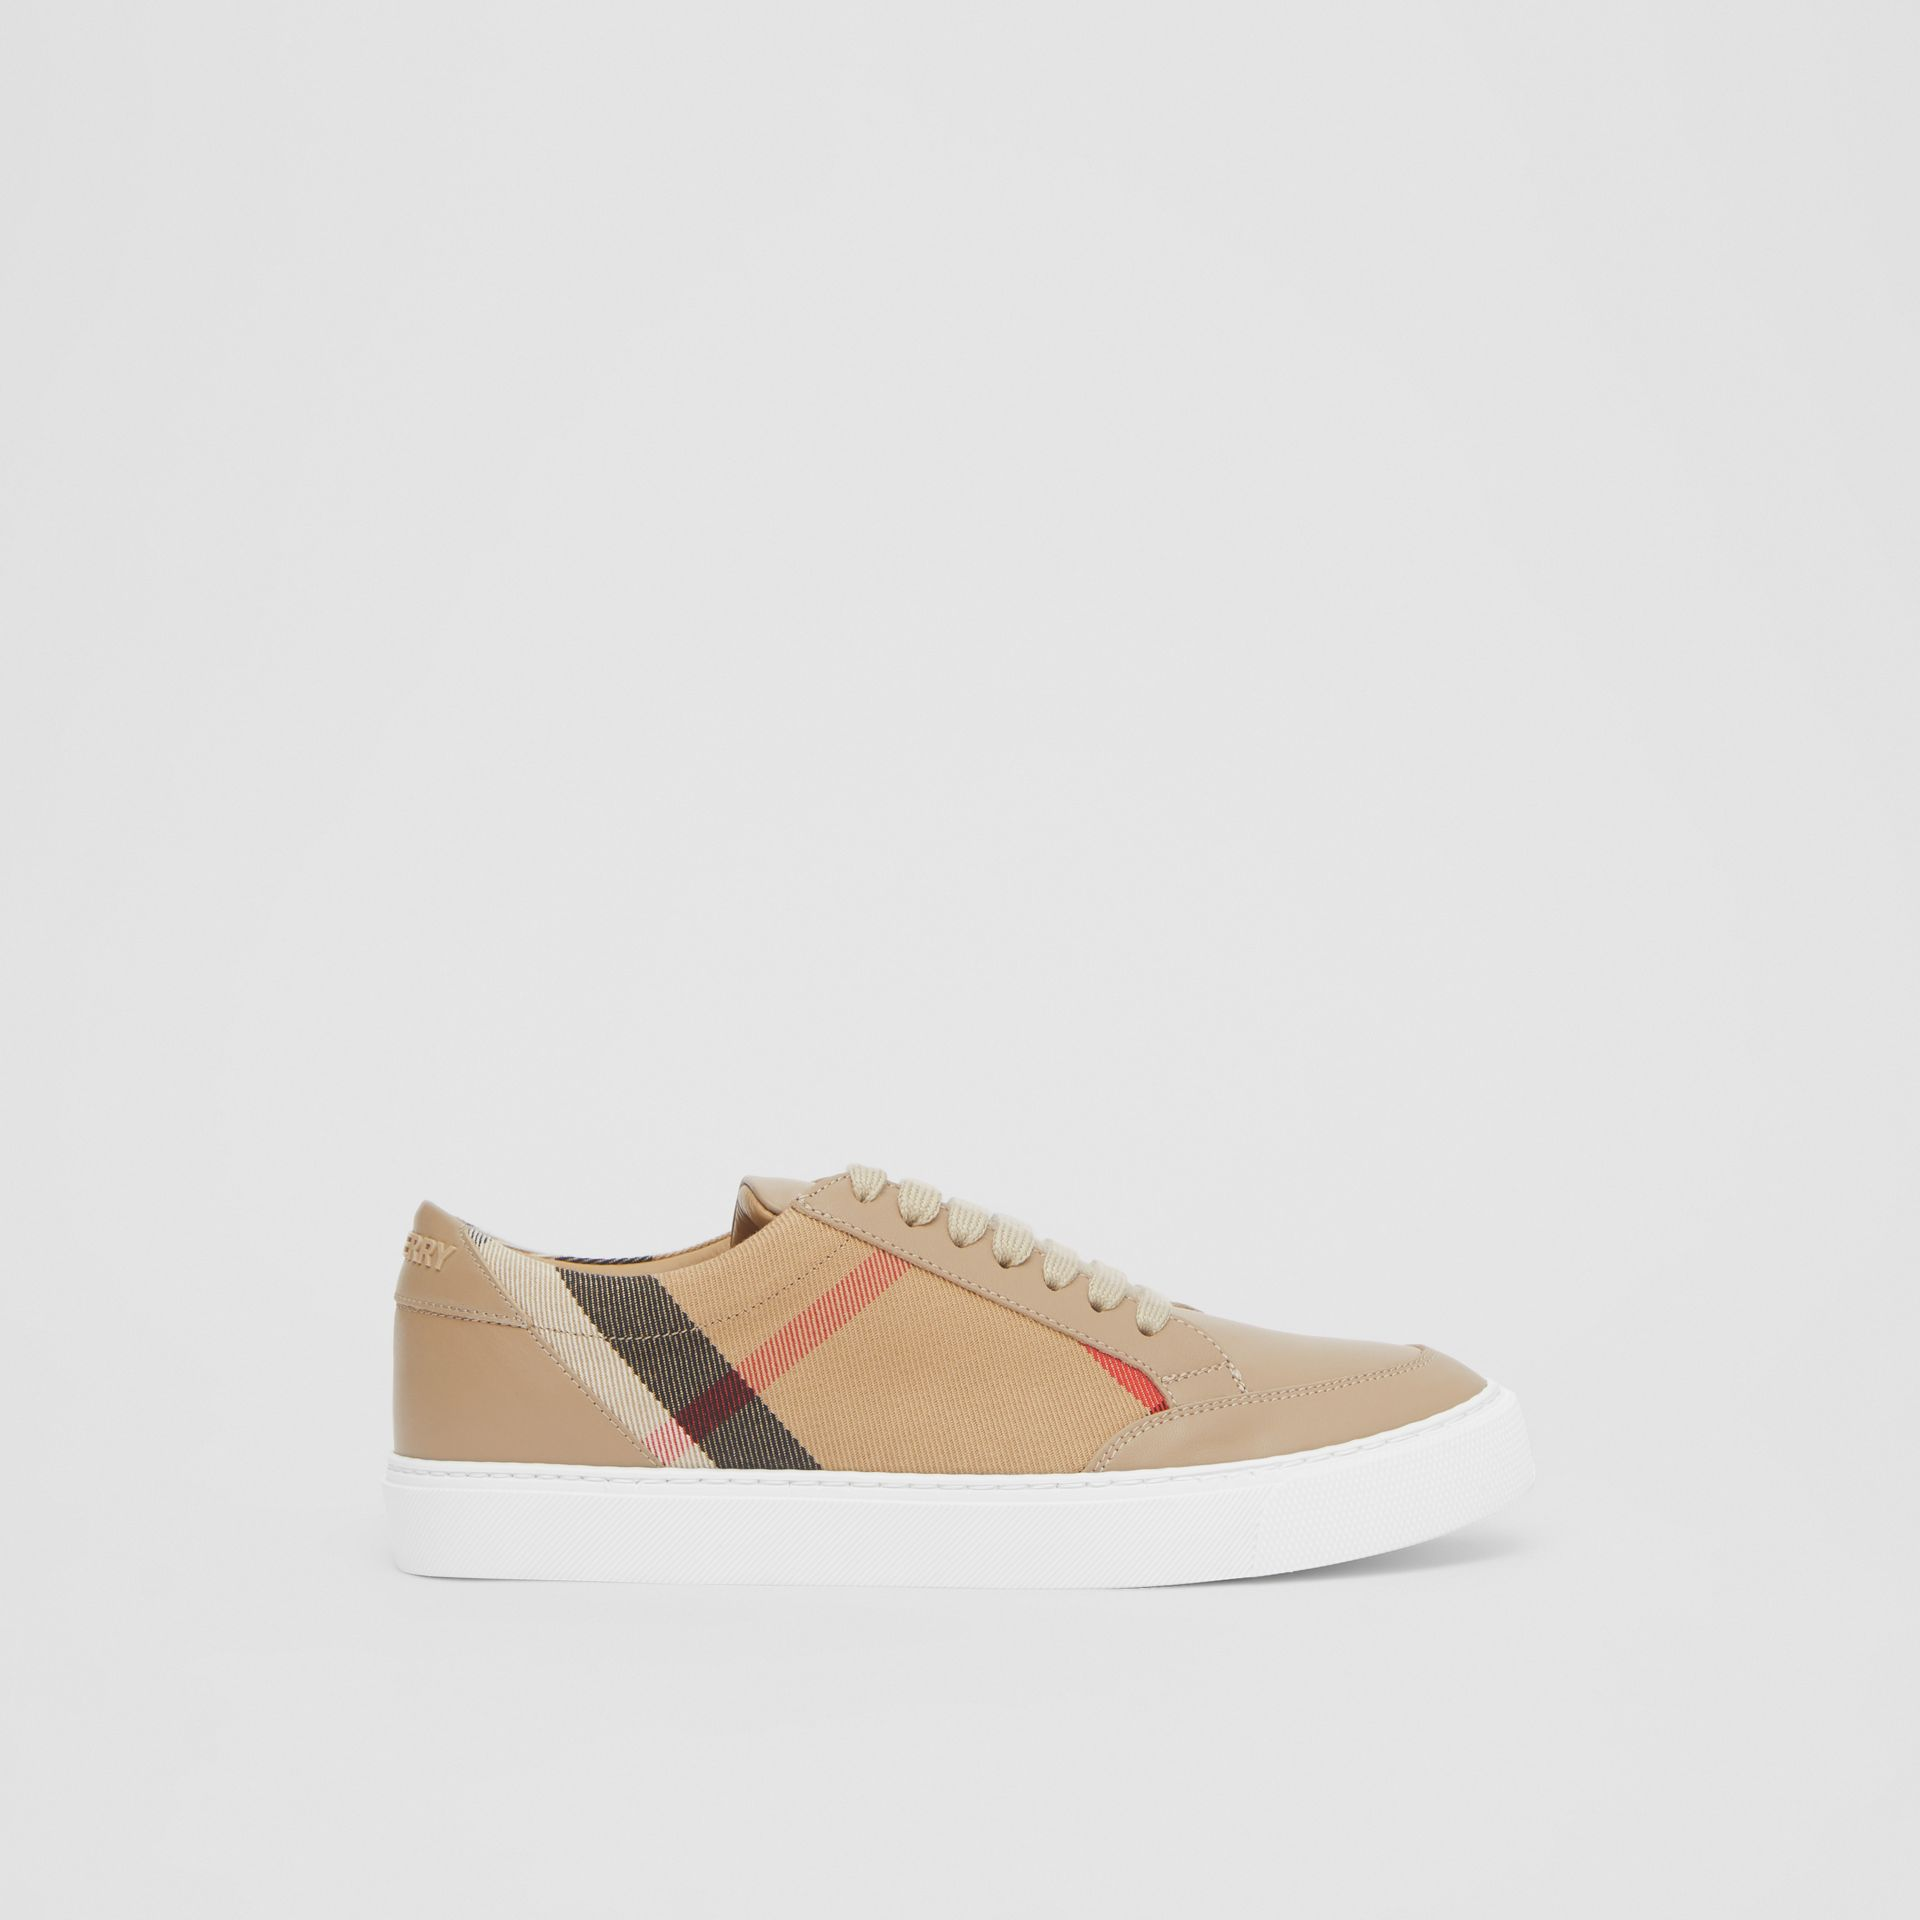 House Check and Leather Sneakers in Tan - Women | Burberry - gallery image 5